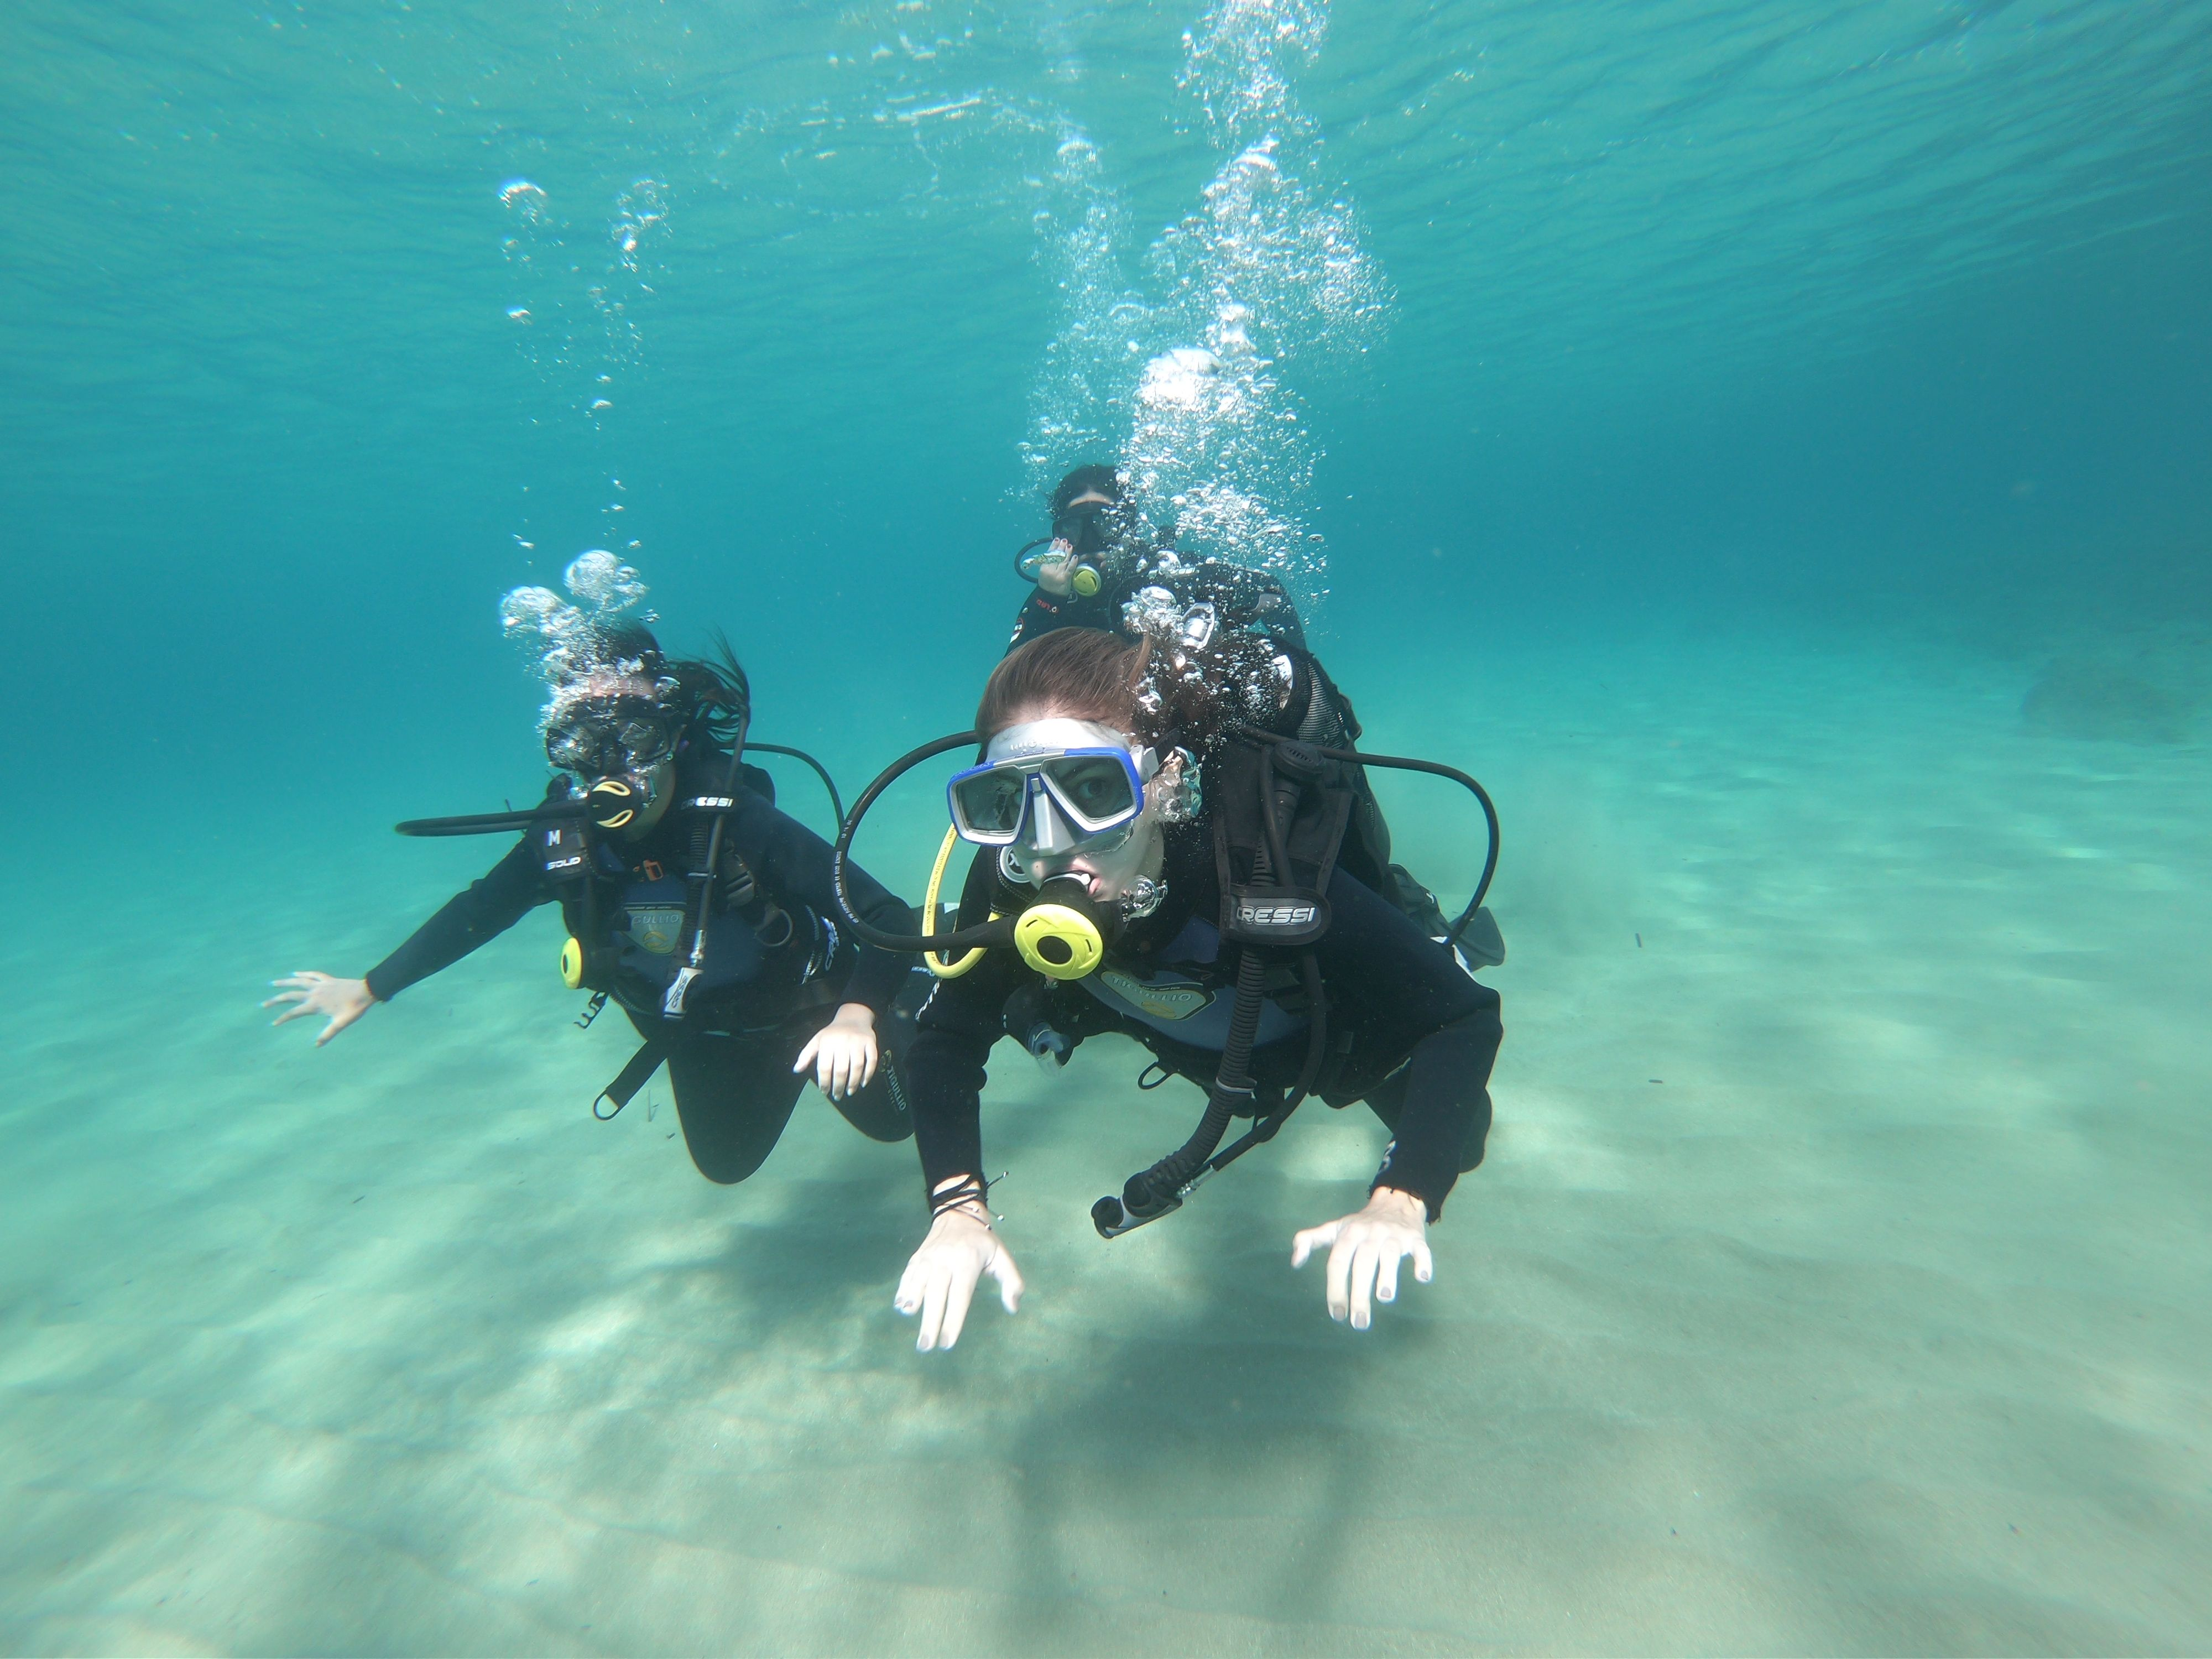 Two women scuba diving in blue waters just above the sandy sea bed